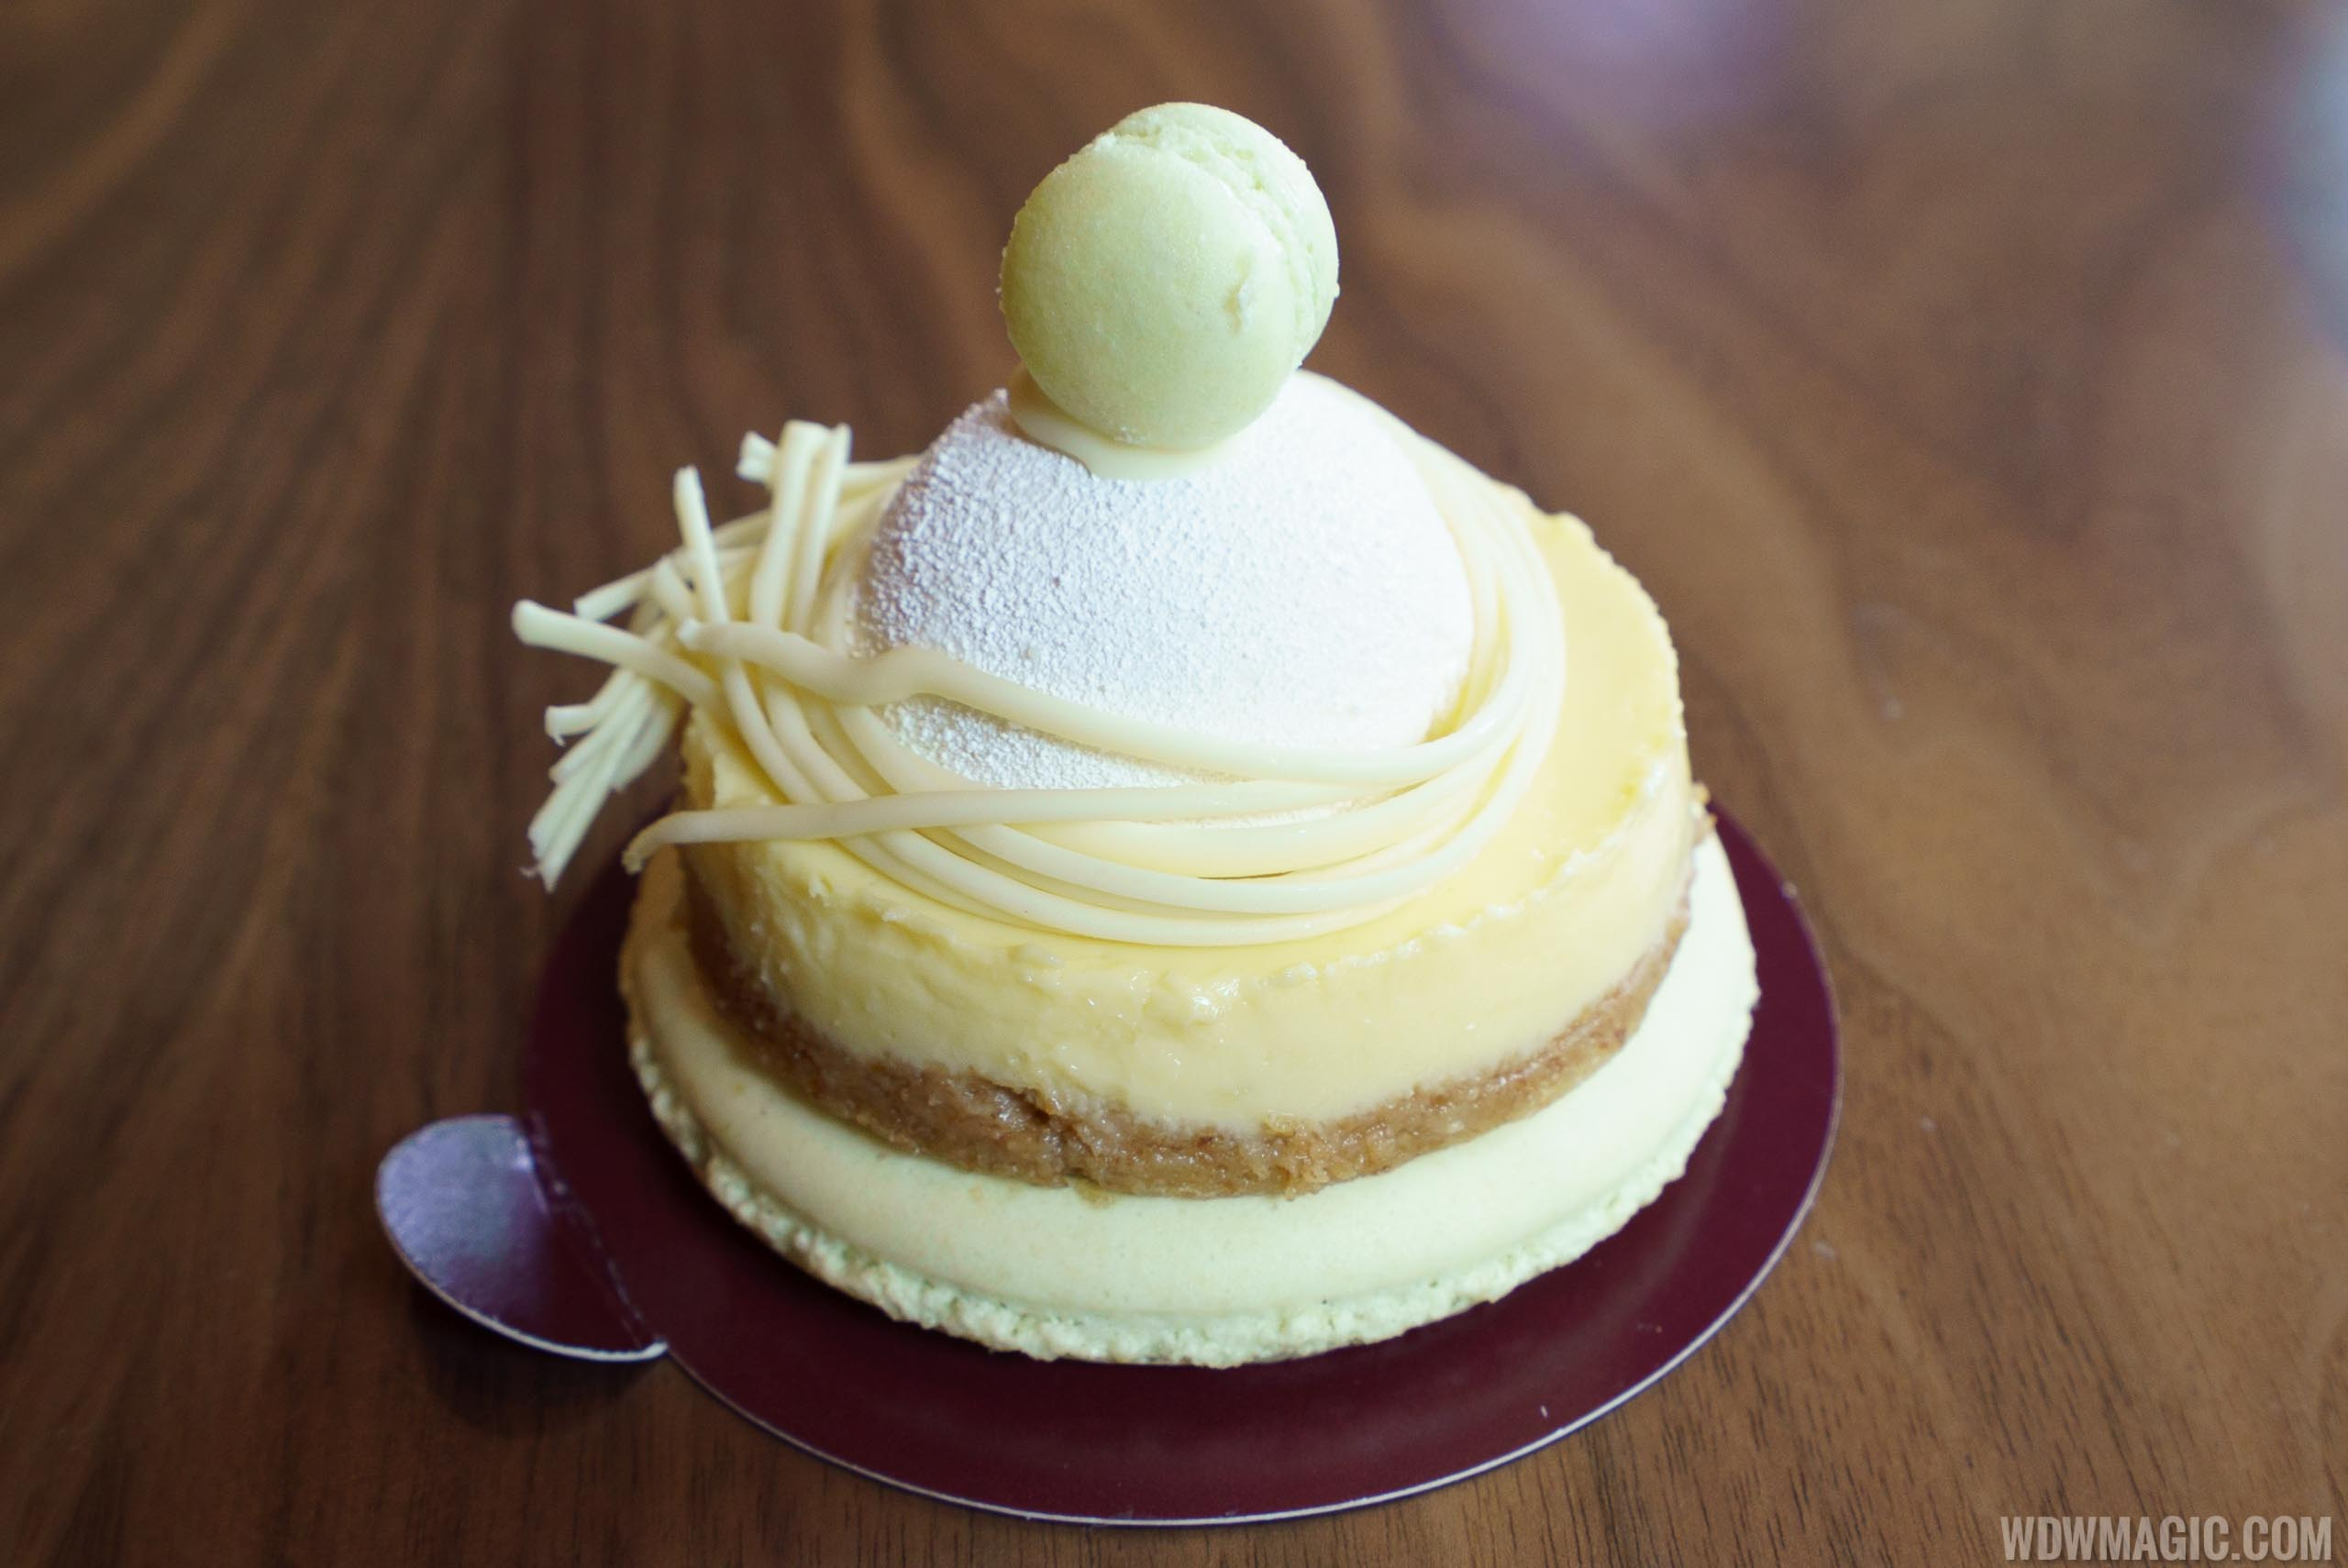 Amorette's Patisserie - Sunset on Mile Marker 0: Key Lime Meringue